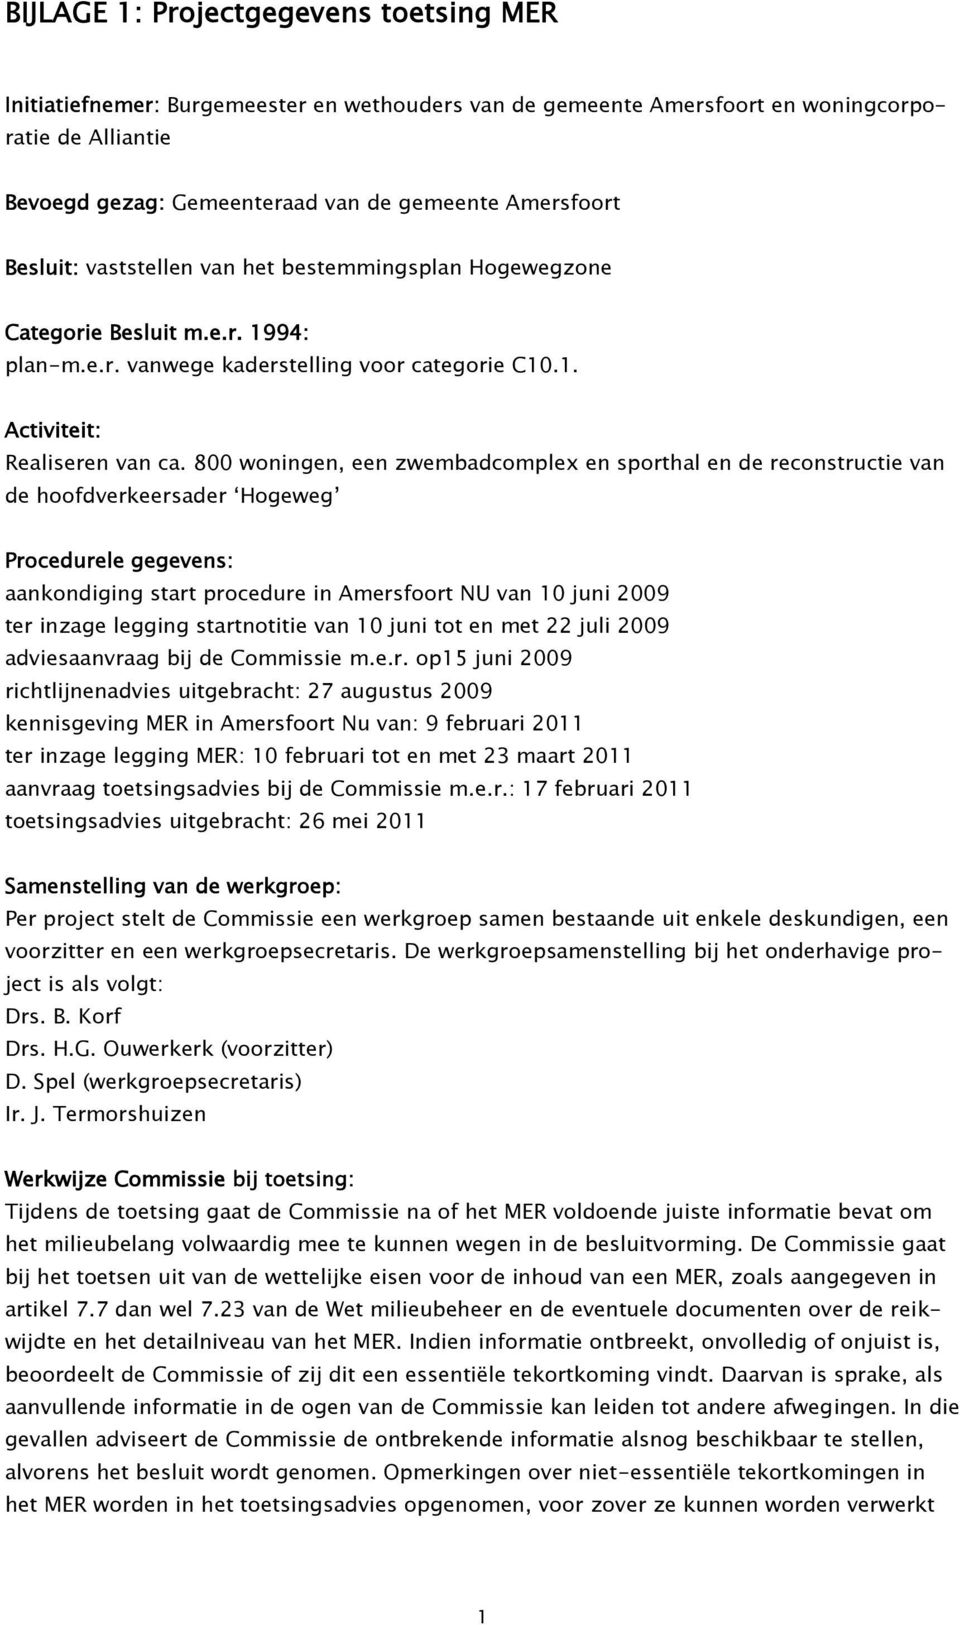 800 woningen, een zwembadcomplex en sporthal en de reconstructie van de hoofdverkeersader Hogeweg Procedurele gegevens: aankondiging start procedure in Amersfoort NU van 10 juni 2009 ter inzage